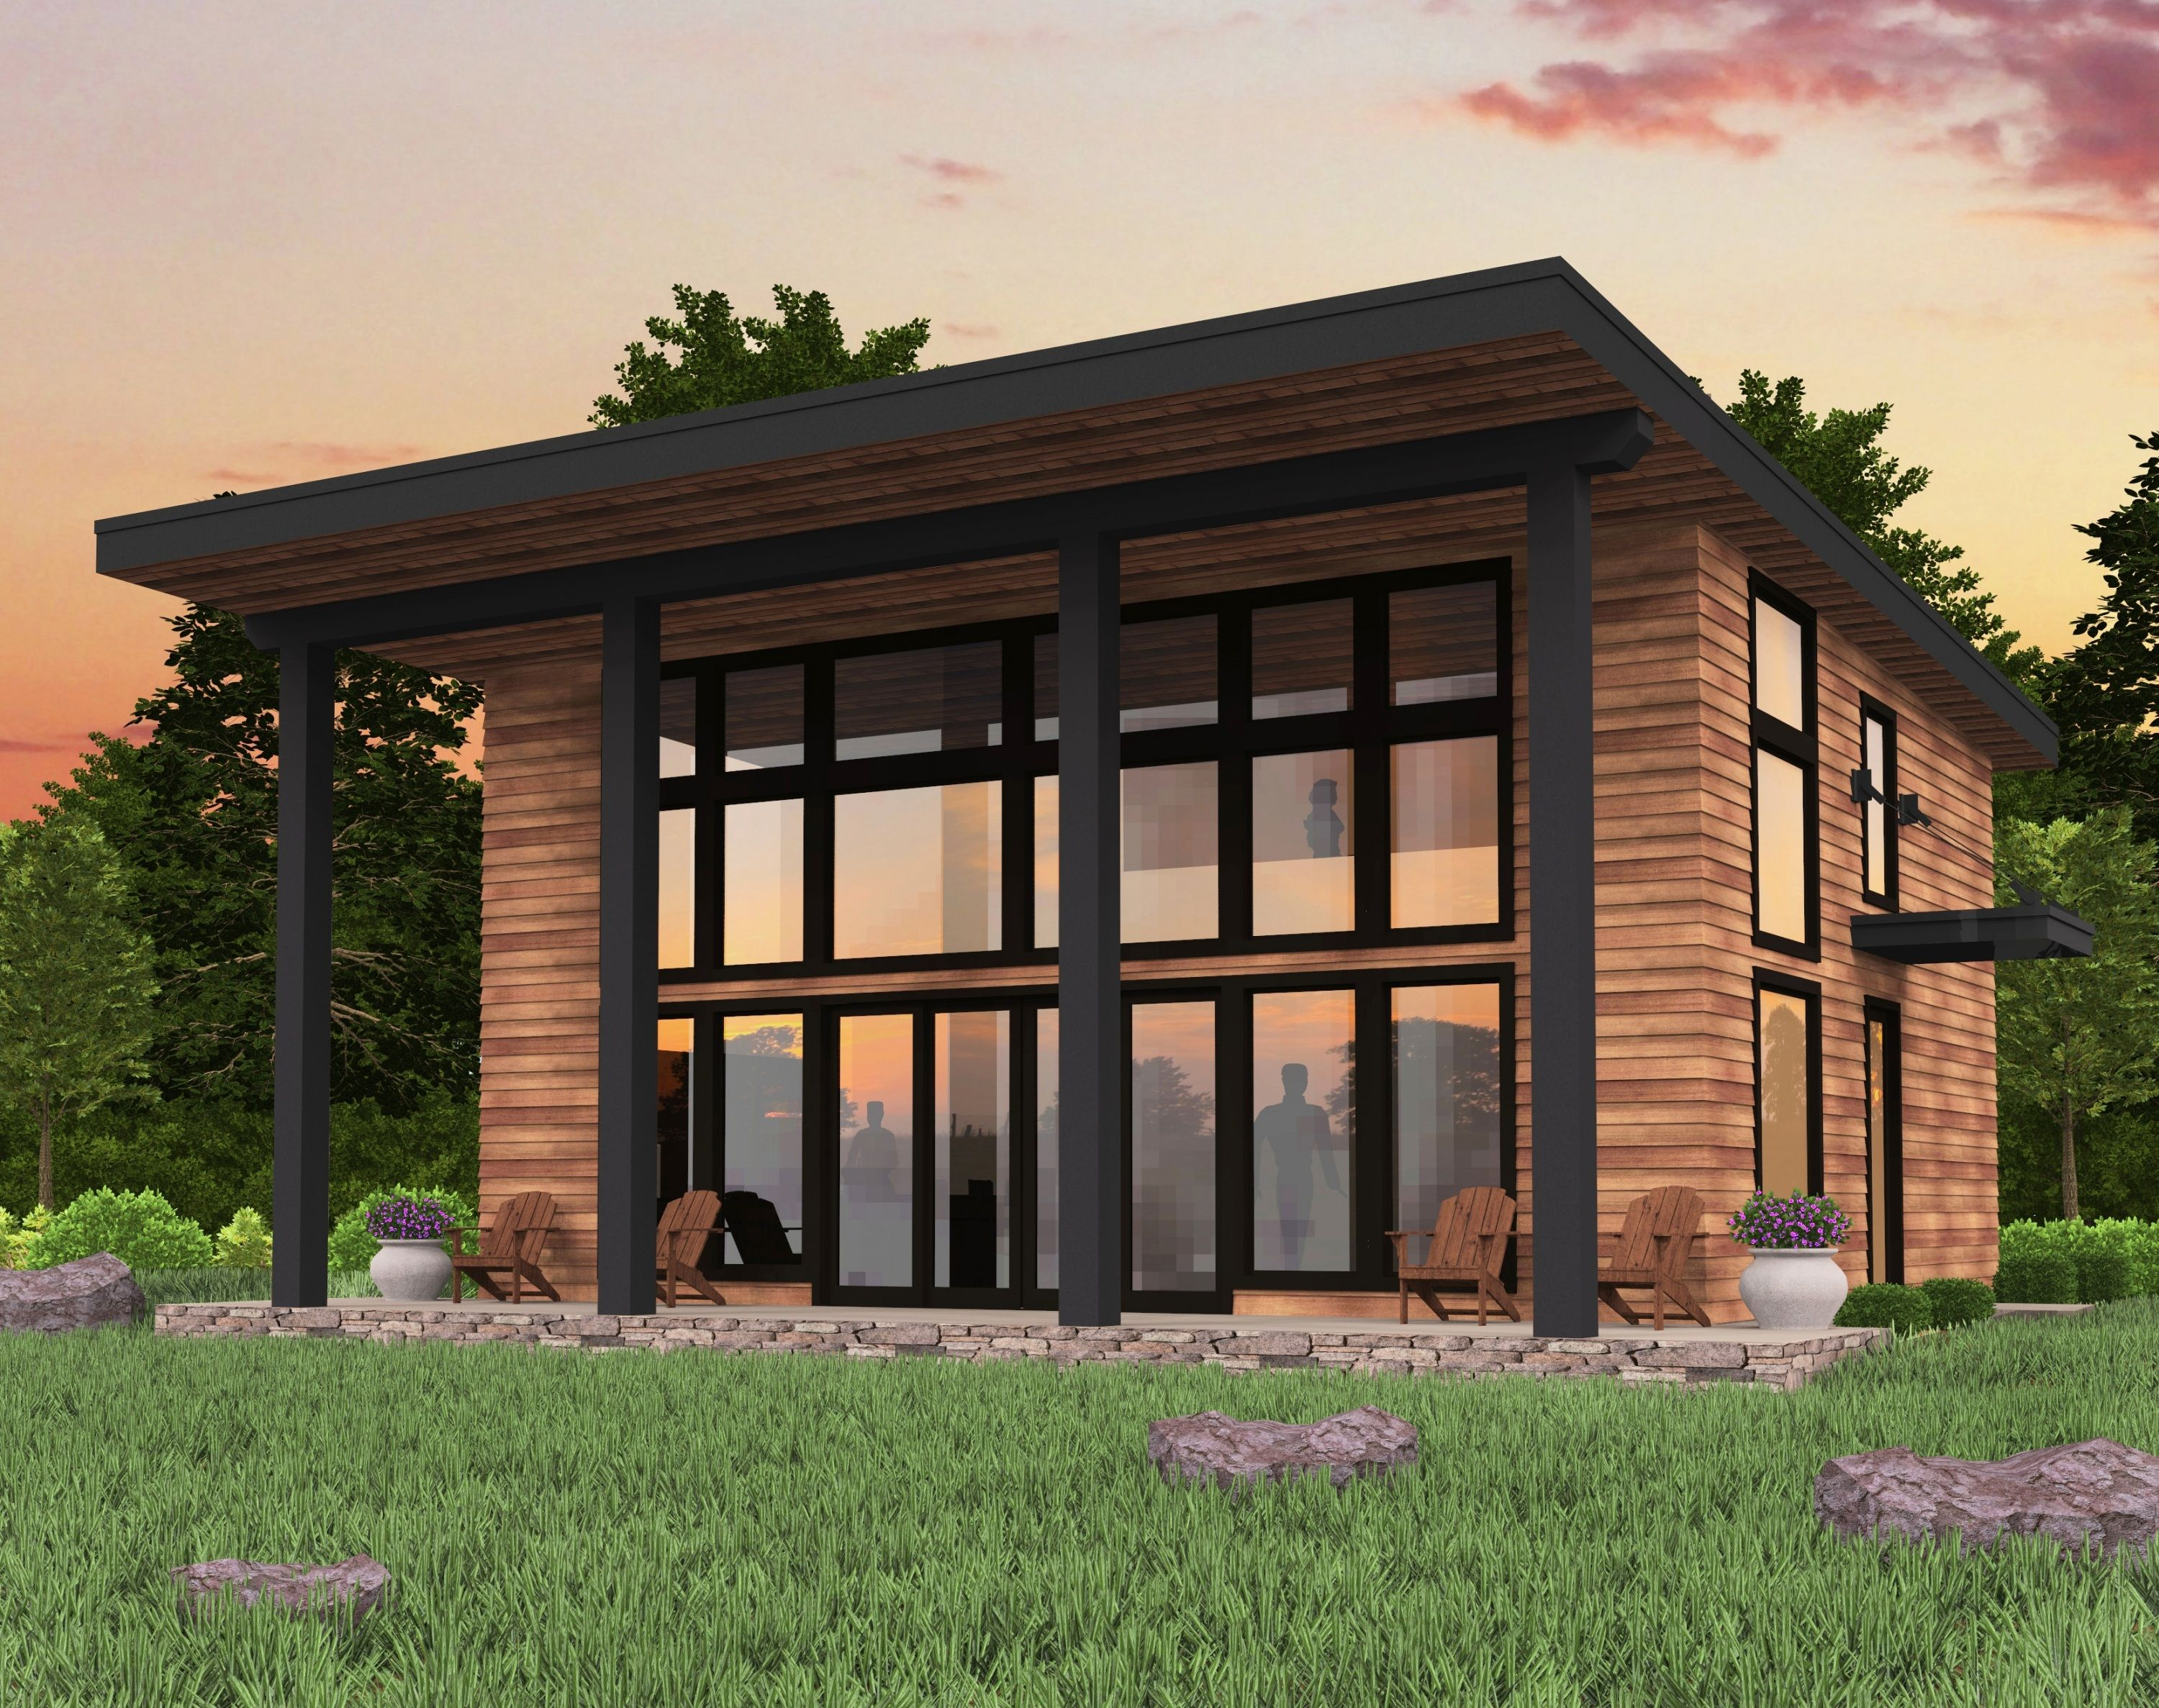 Bamboo House Plan Bamboo House Design Small Modern House Plans